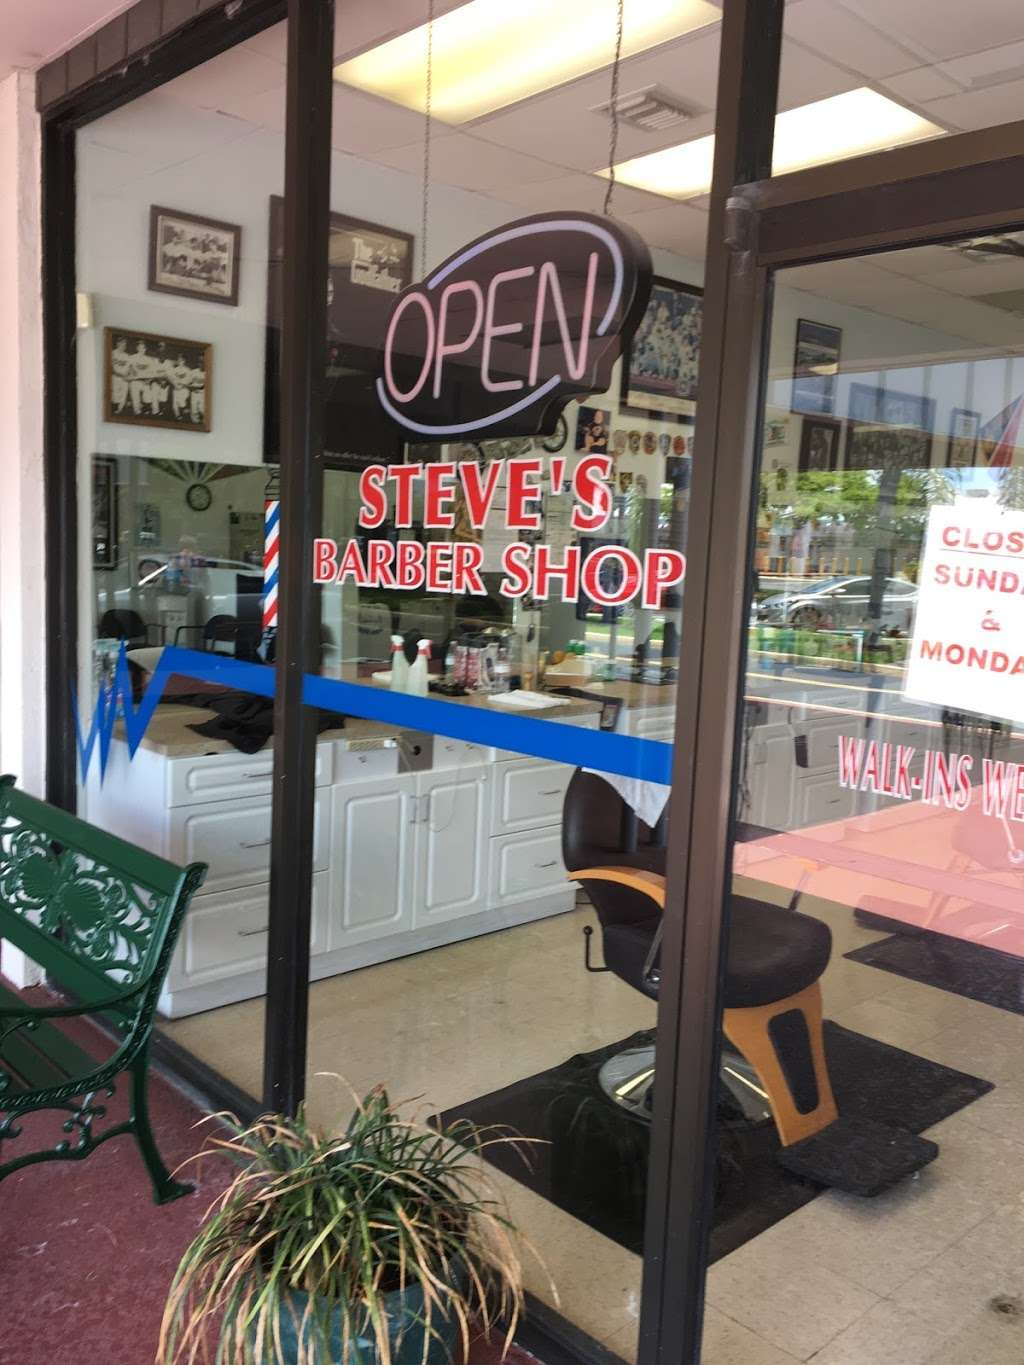 Steves Barber Shop - hair care  | Photo 1 of 2 | Address: 10080 W McNab Rd, Tamarac, FL 33321, USA | Phone: (954) 913-6654